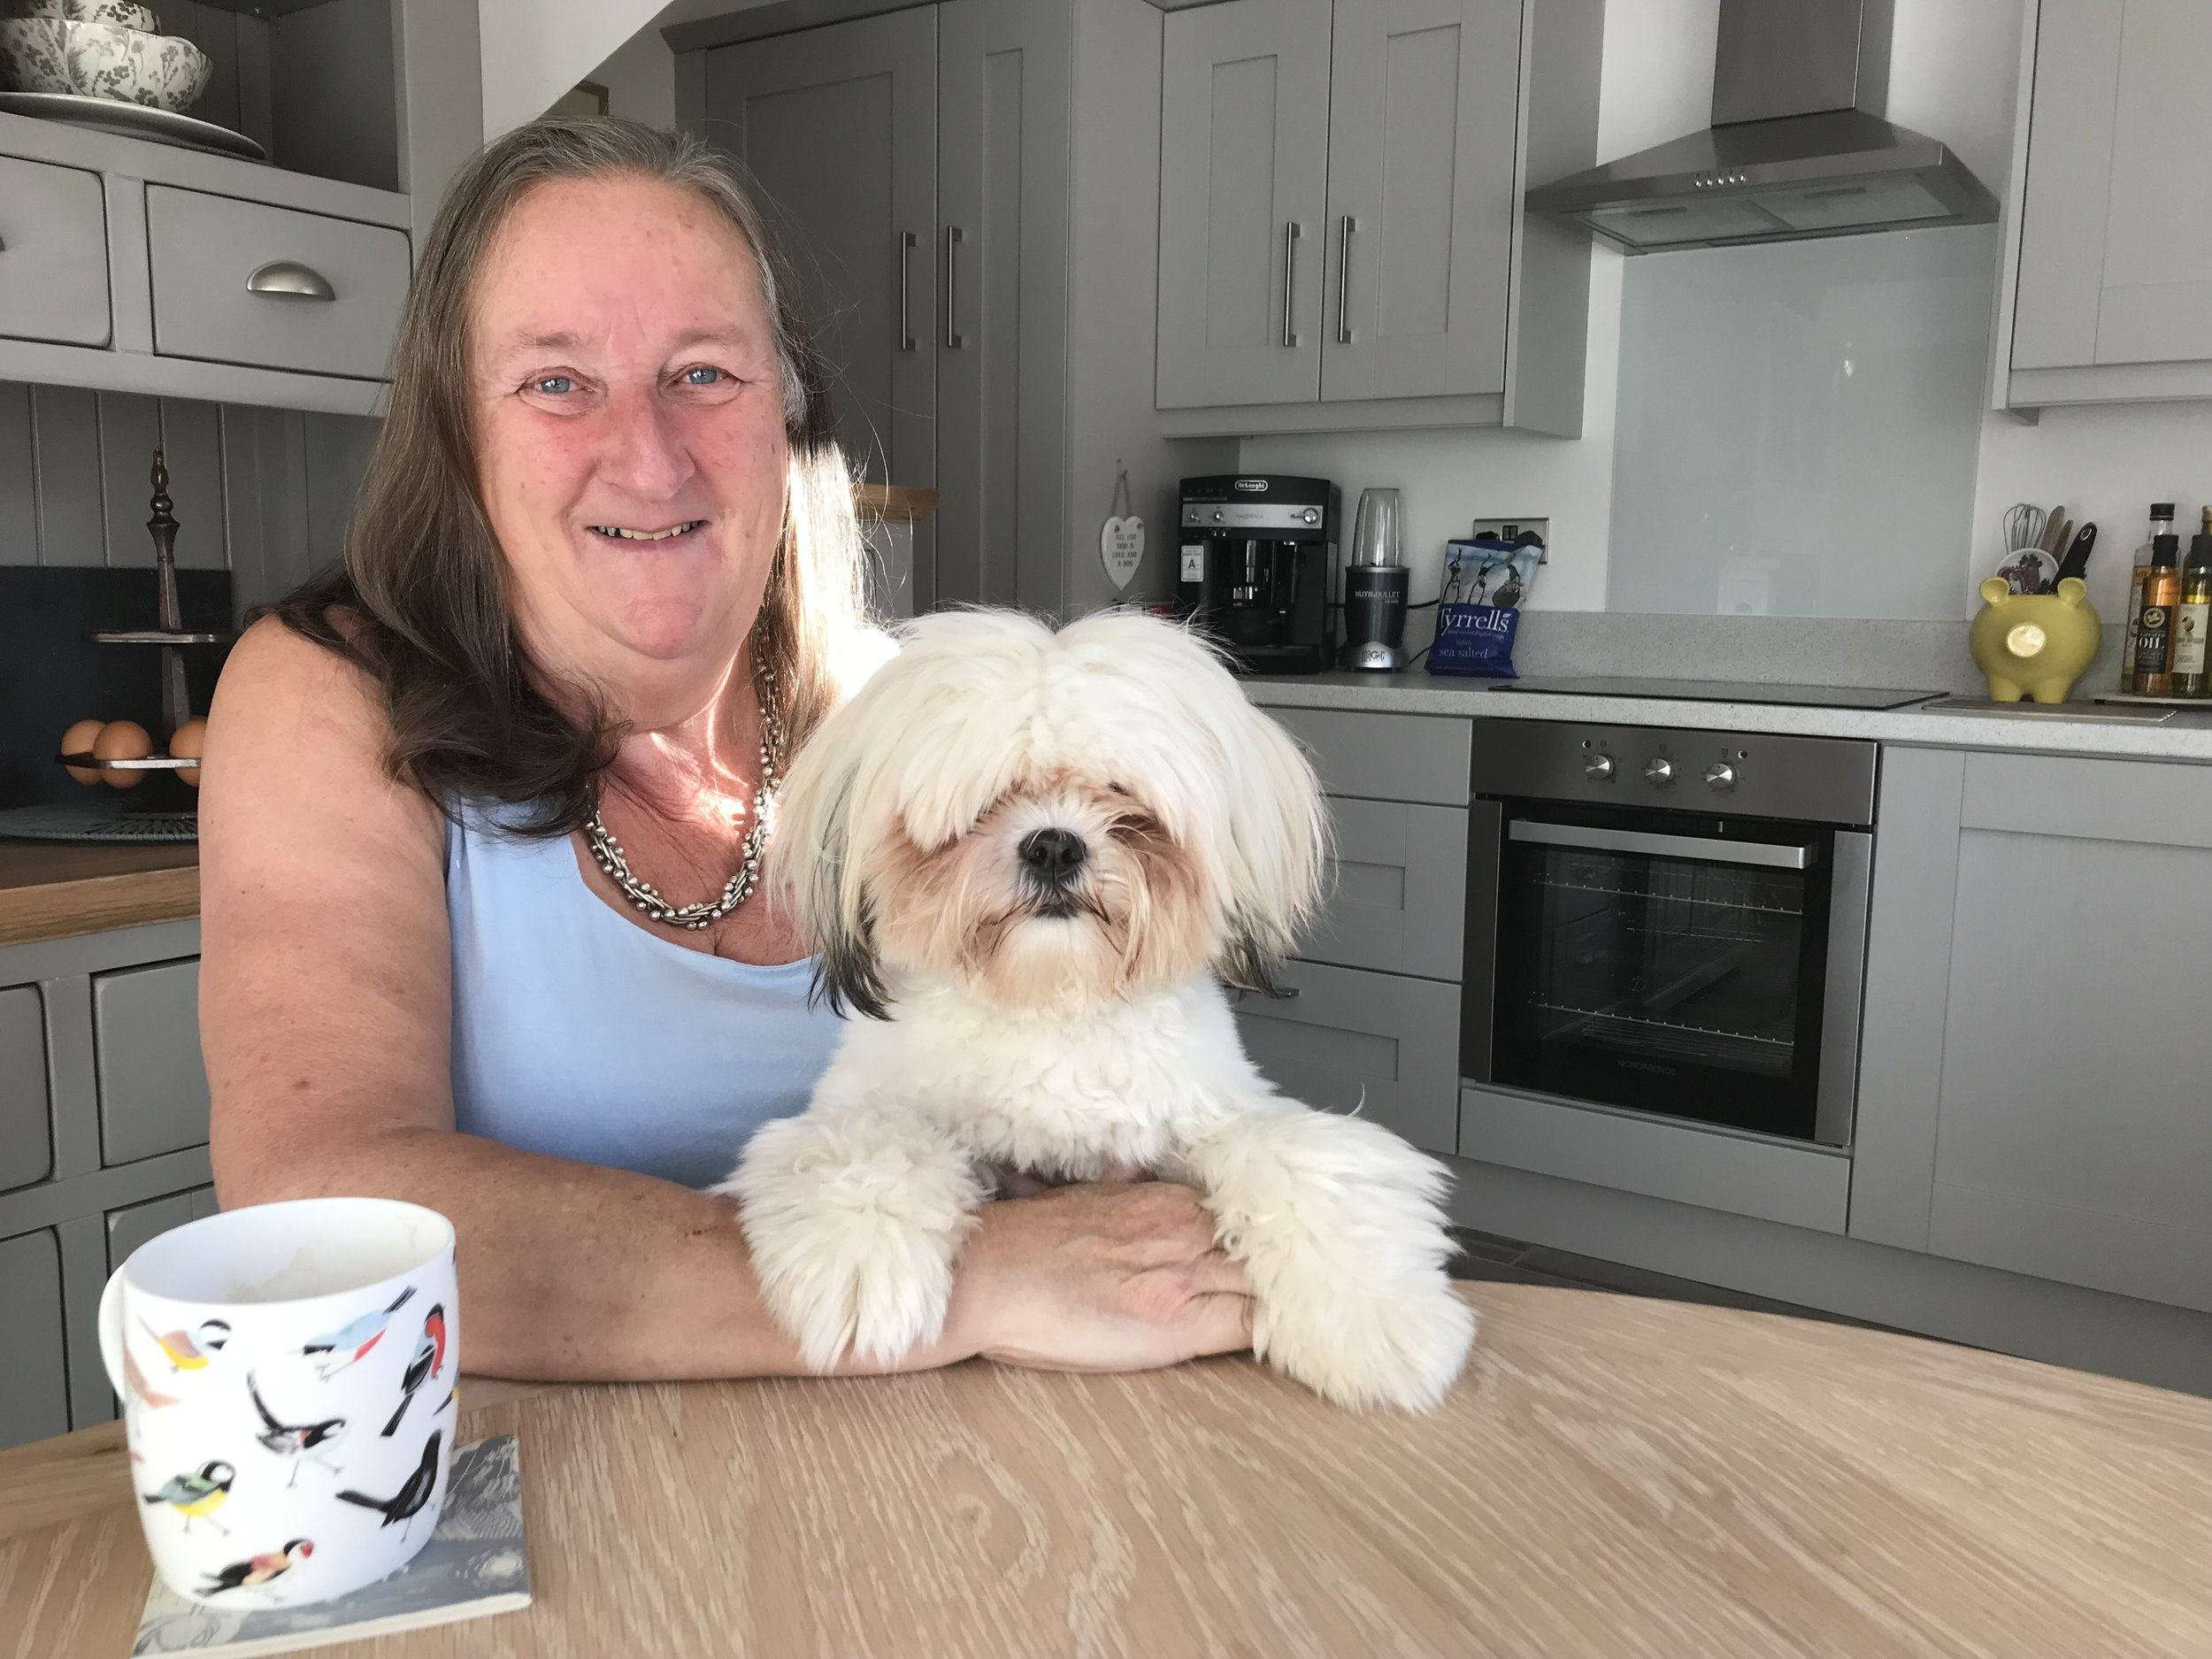 Susan King is pictured with her dog, Moppett. Penguin PR: public relations, media and communications